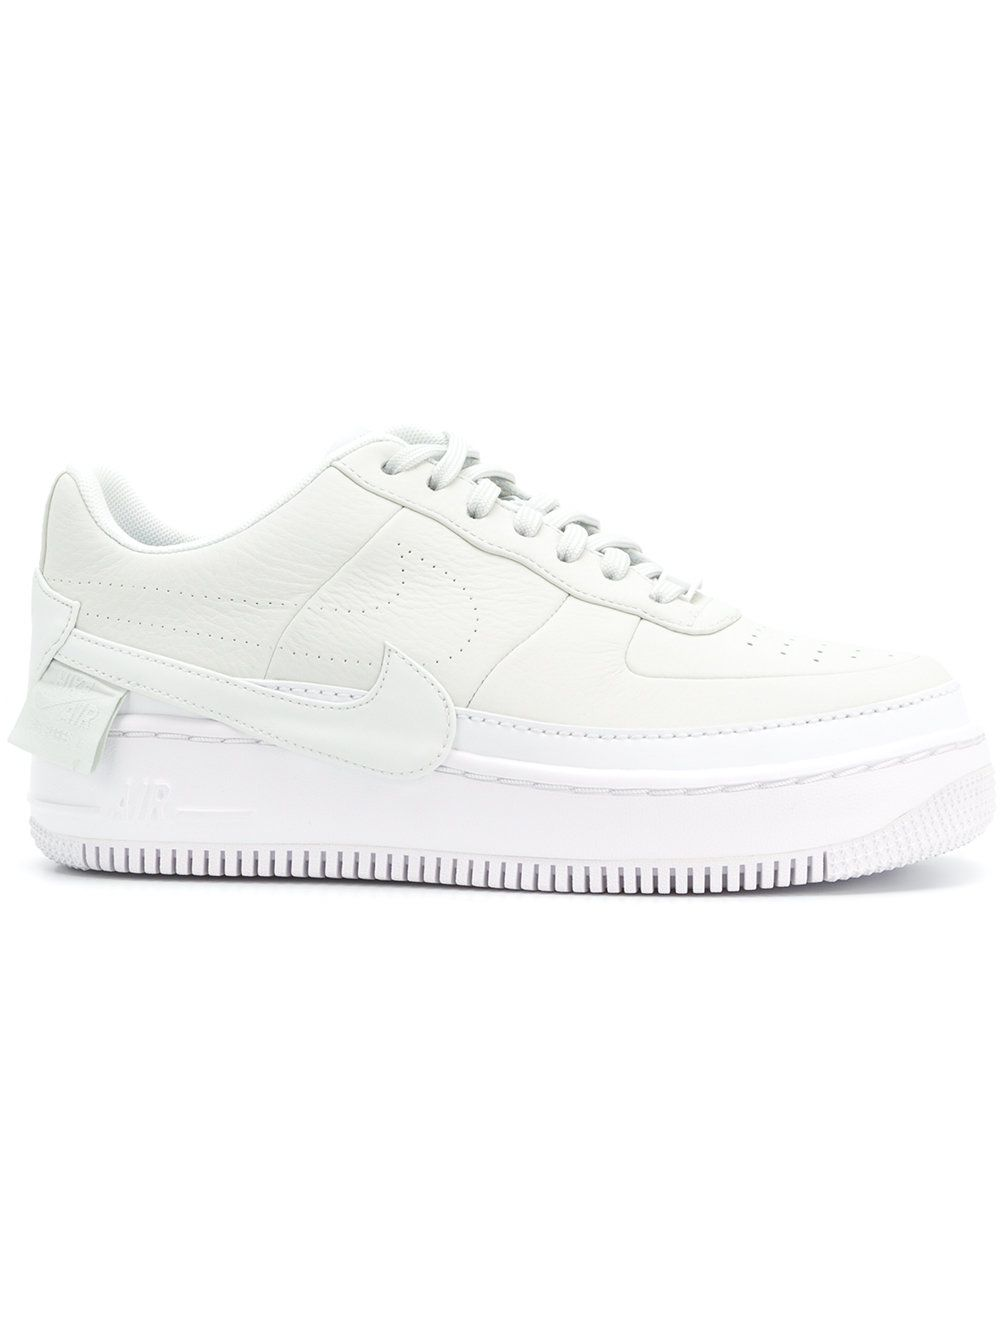 Nike Air Force 1 Jester De Xx Reimaginado Zapatillas Esclavo De Jester La Moda 2bb6d8